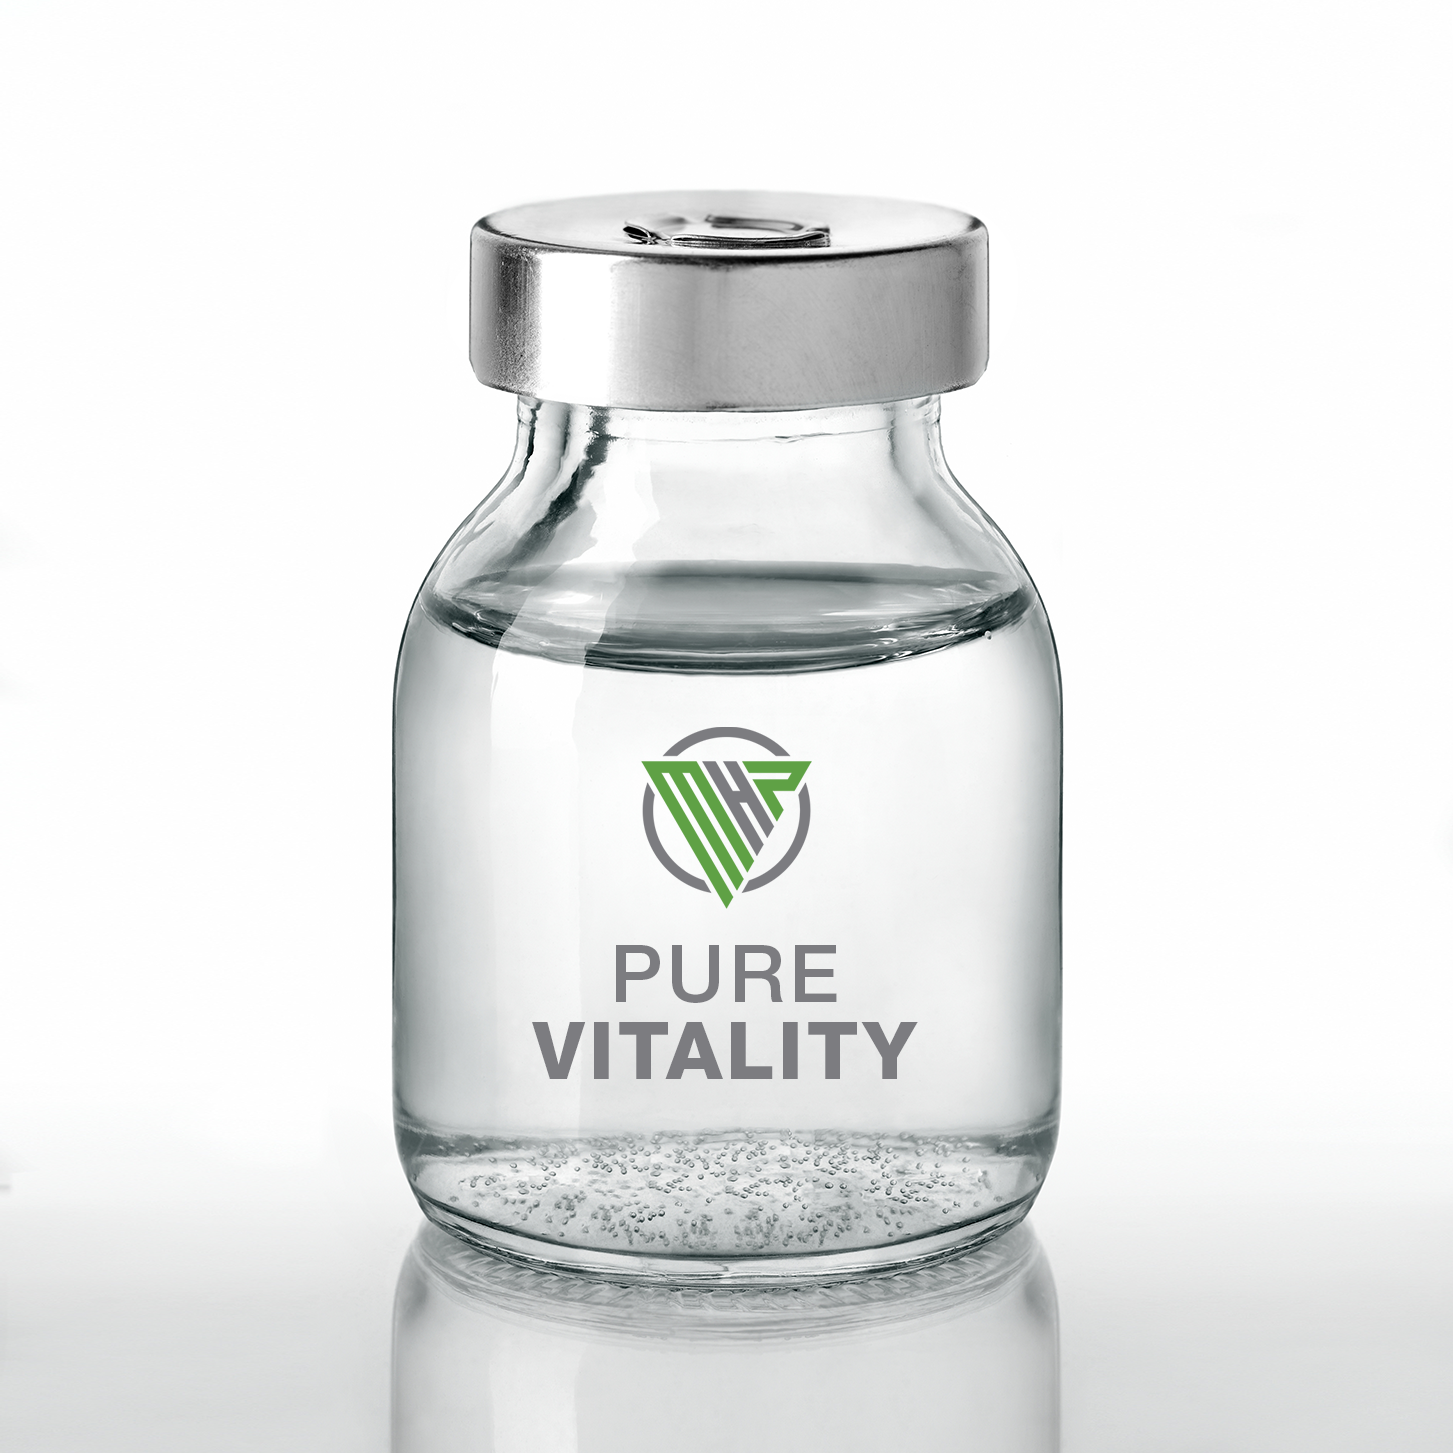 PURE VITALITY - A powerful antioxidant that helps maintain good overall health and slows down the aging process.